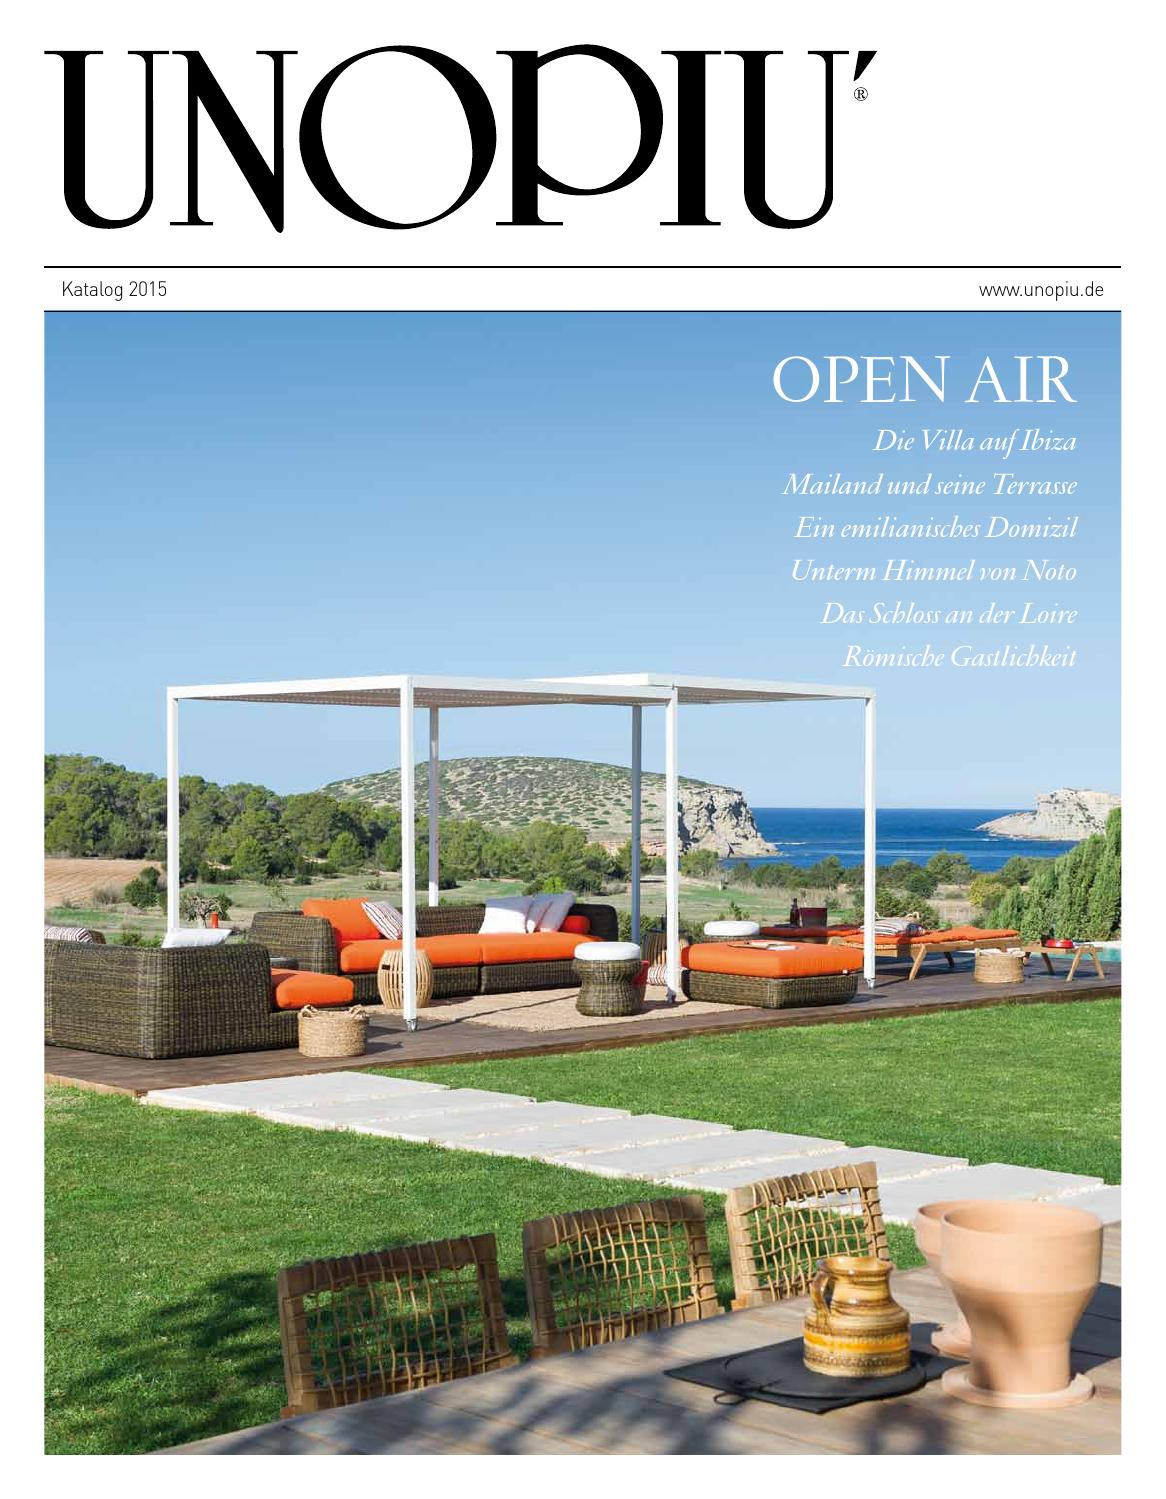 Unopiù Katalog 2015 By Unopiù Spa Issuu